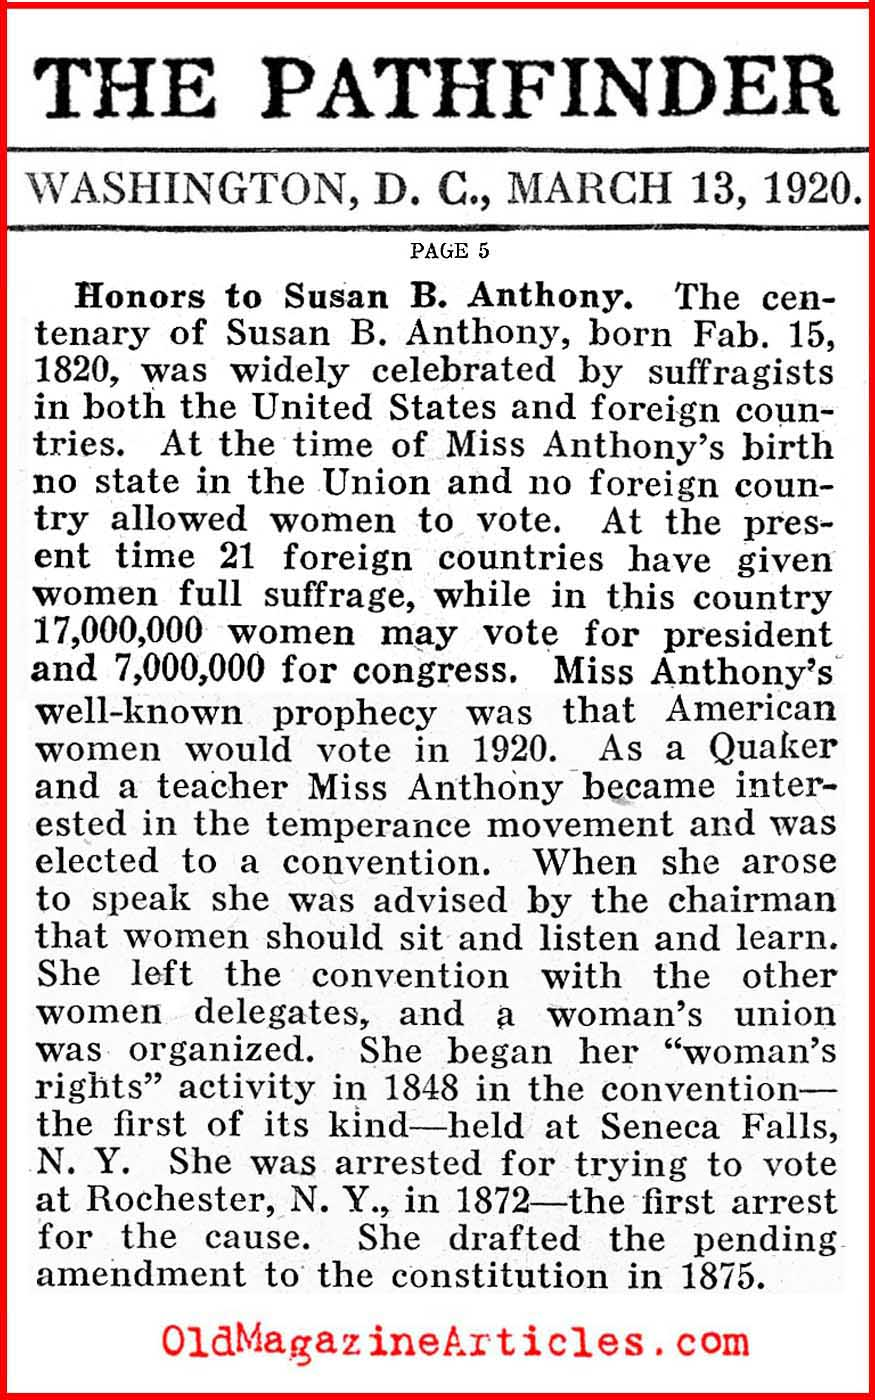 A Salute to Susan B. Anthony (Pathfinder Magazine, 1920)